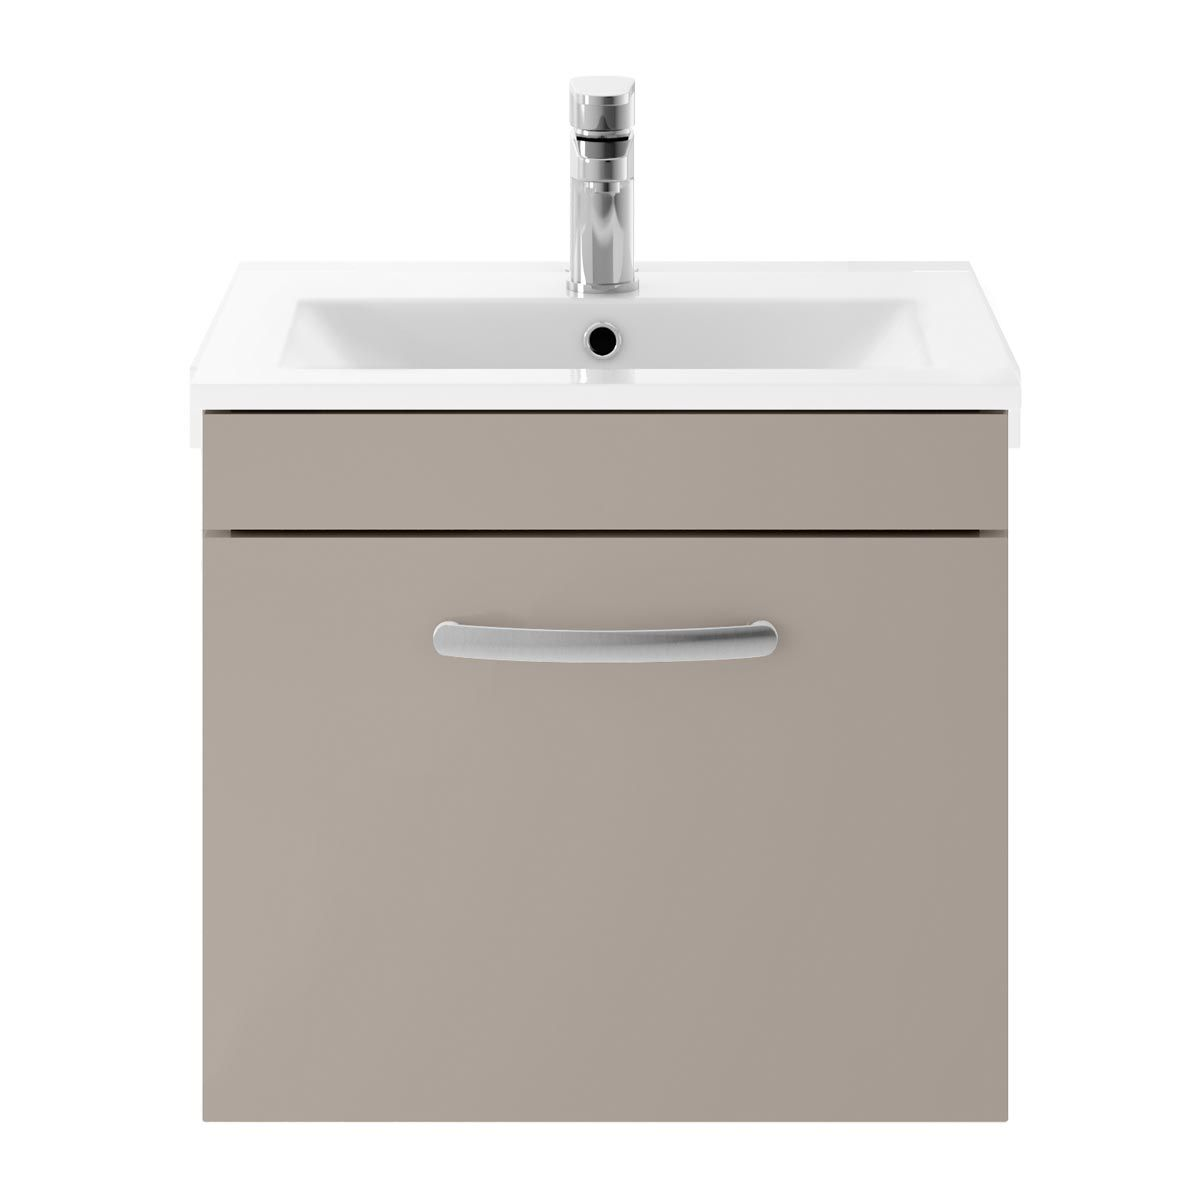 Nuie Athena Stone Grey 1 Drawer Wall Hung Vanity Unit with 18mm Profile Basin 500mm